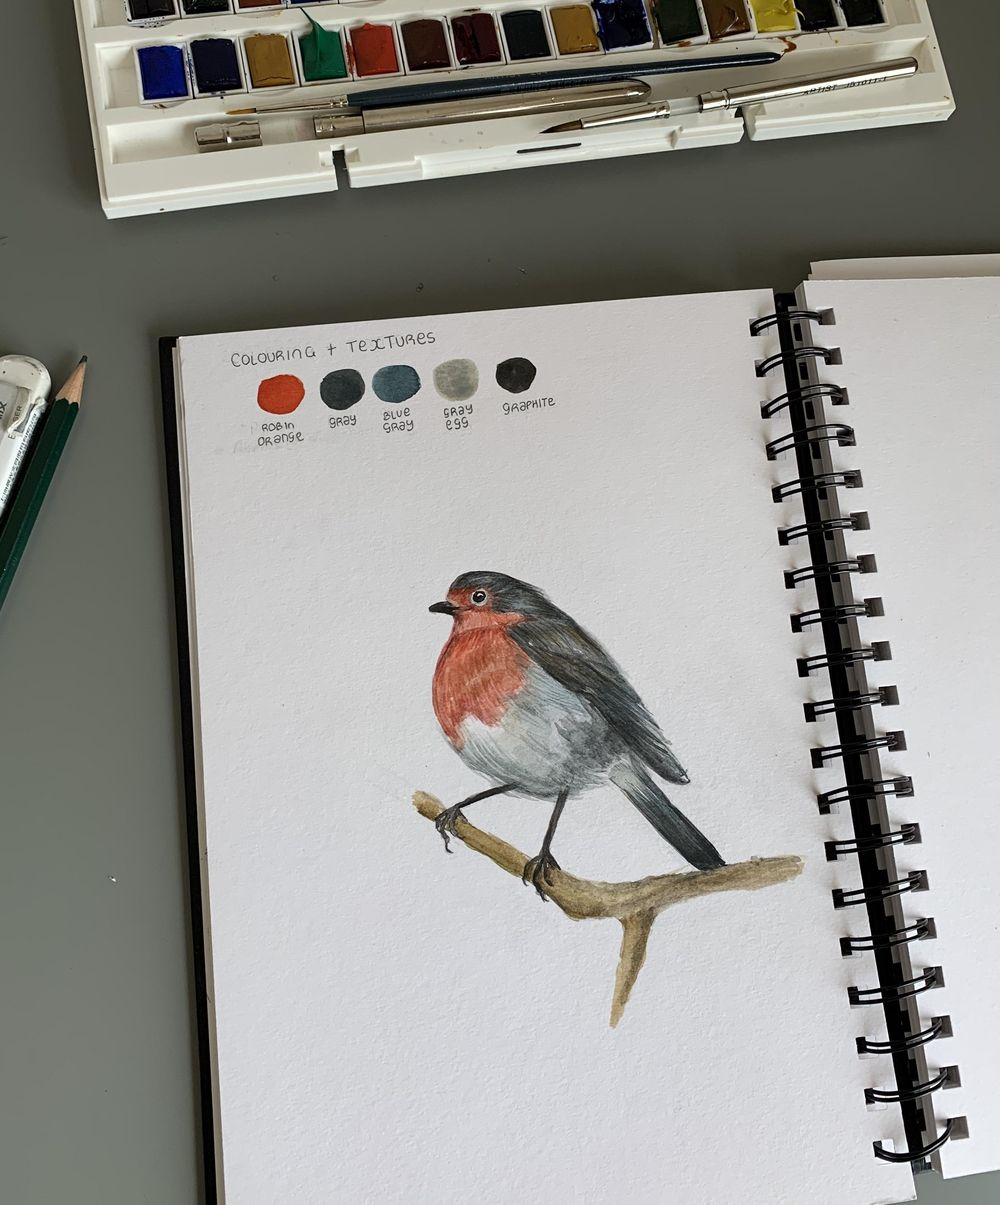 Drawing and painting a robin - image 2 - student project